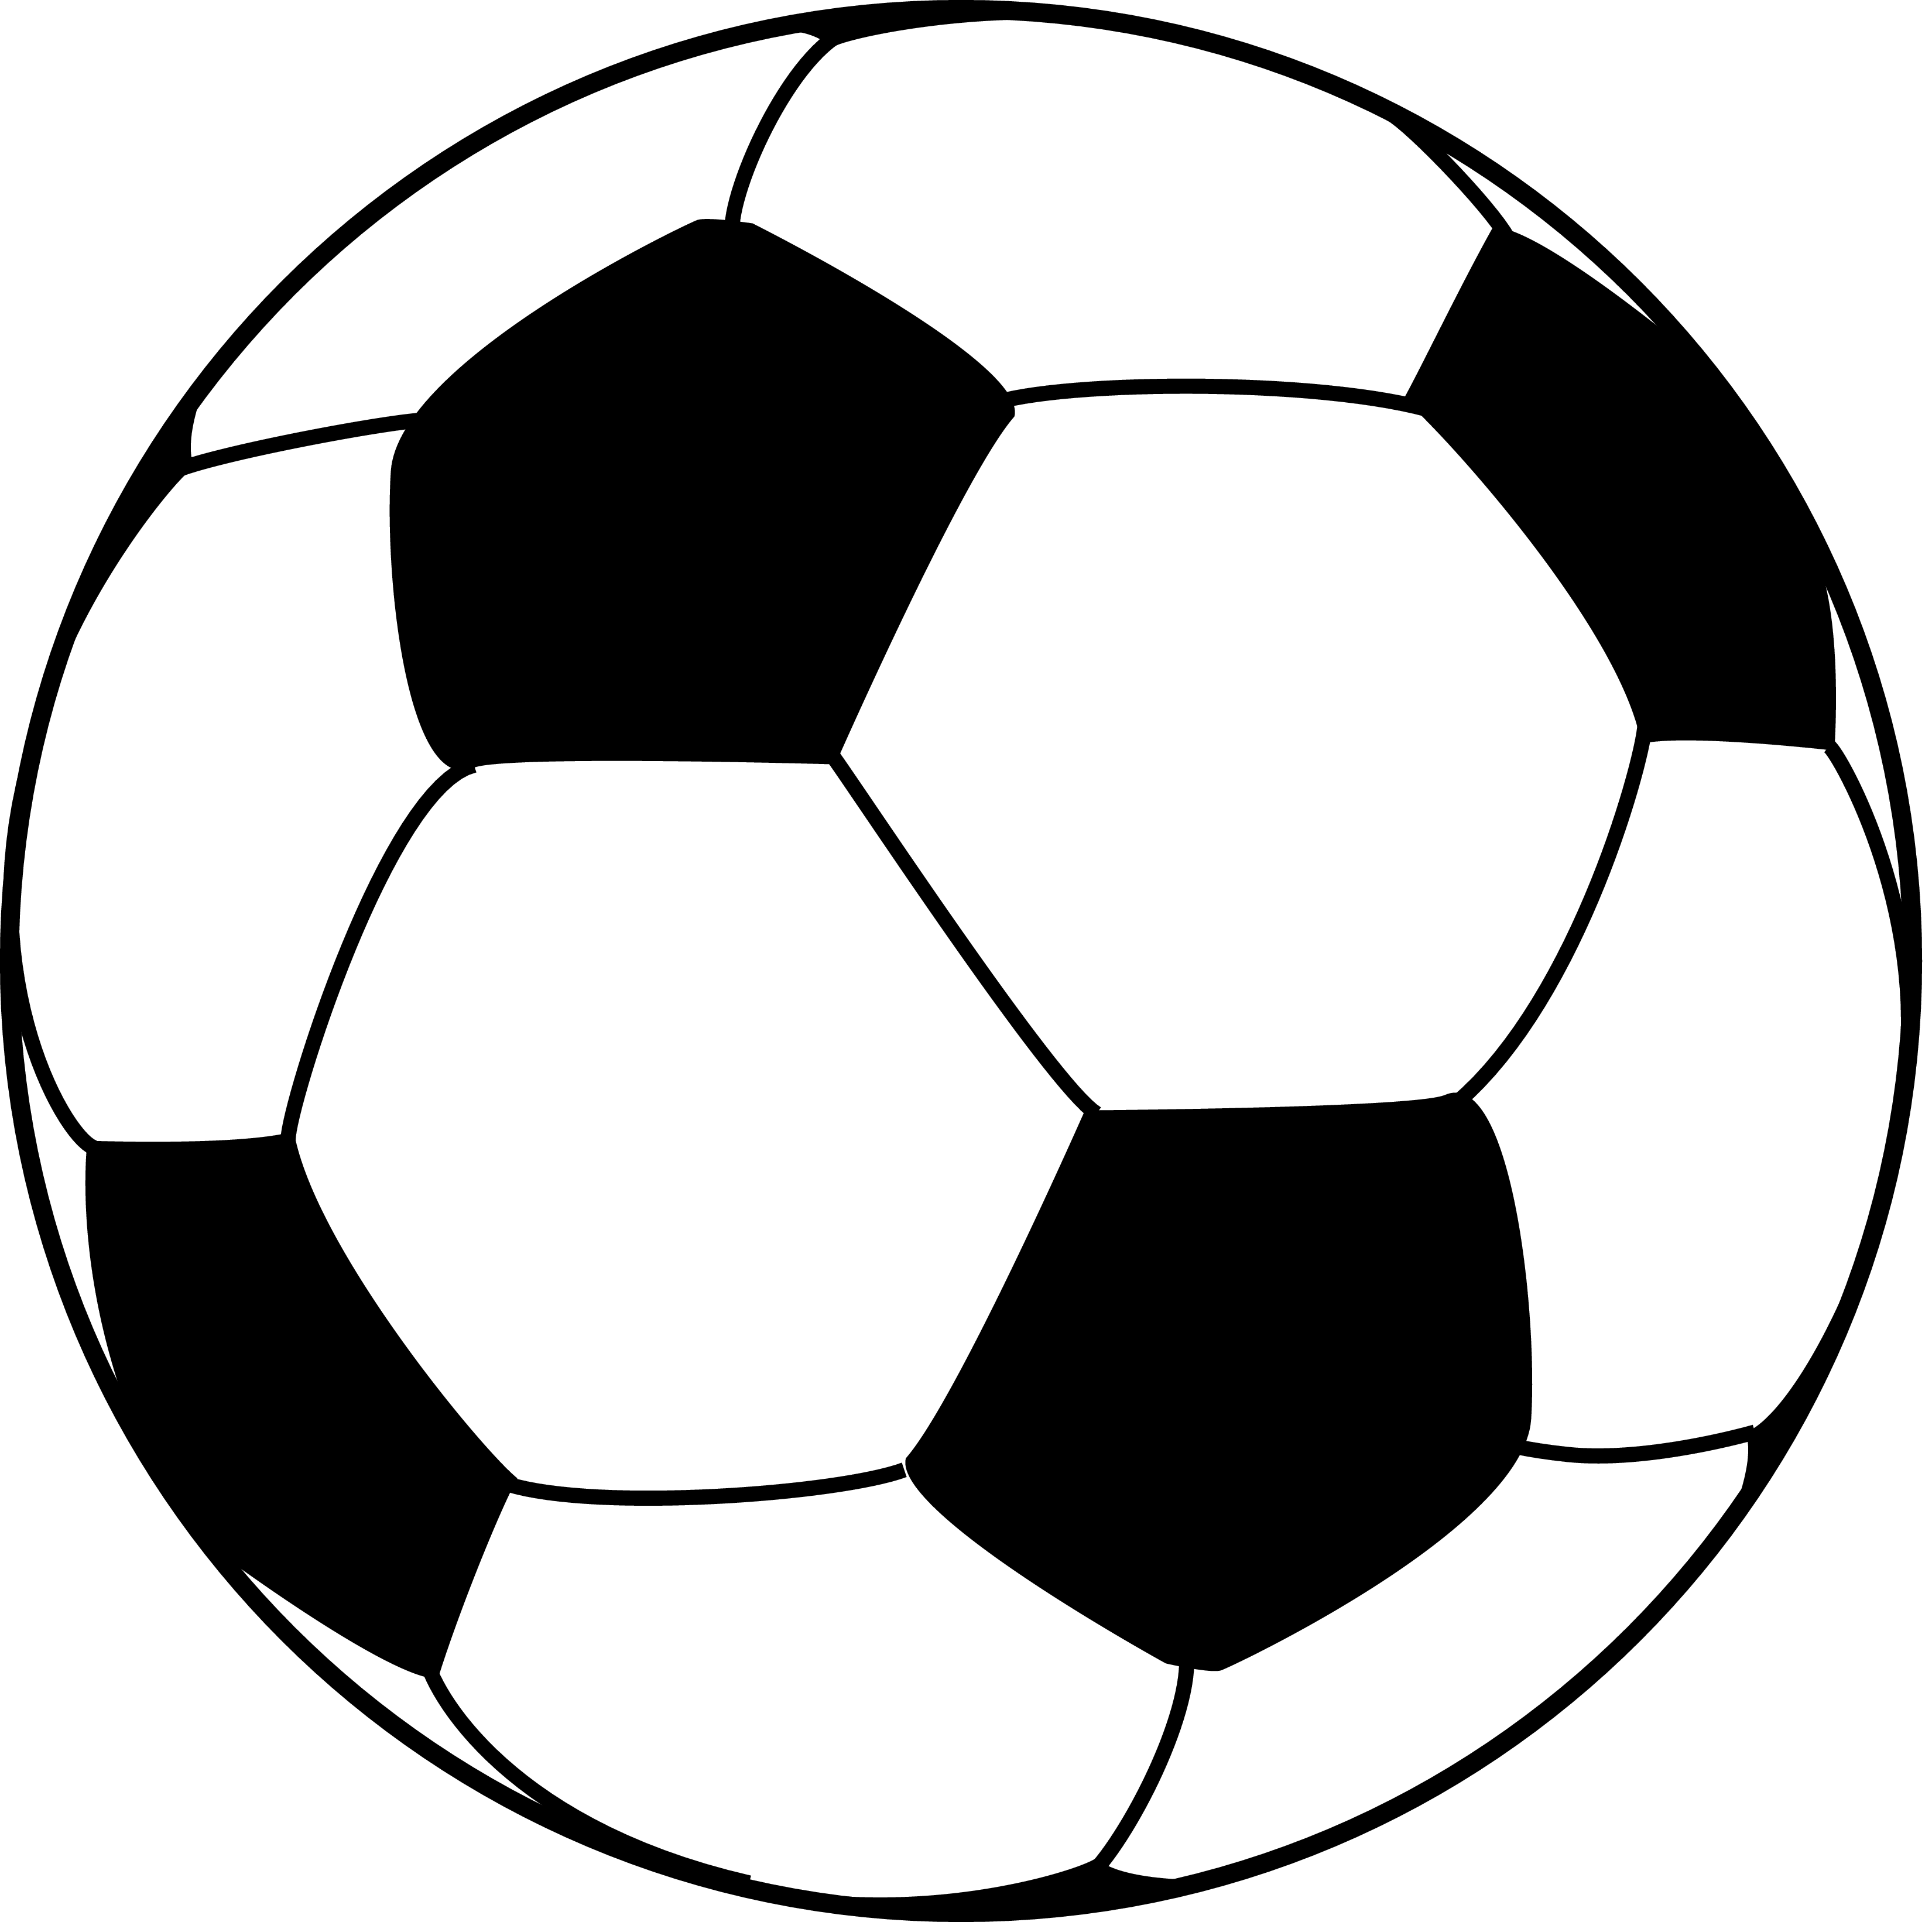 Clip Art Soccerball Clipart soccer ball clipart kid can t find the perfect clip art